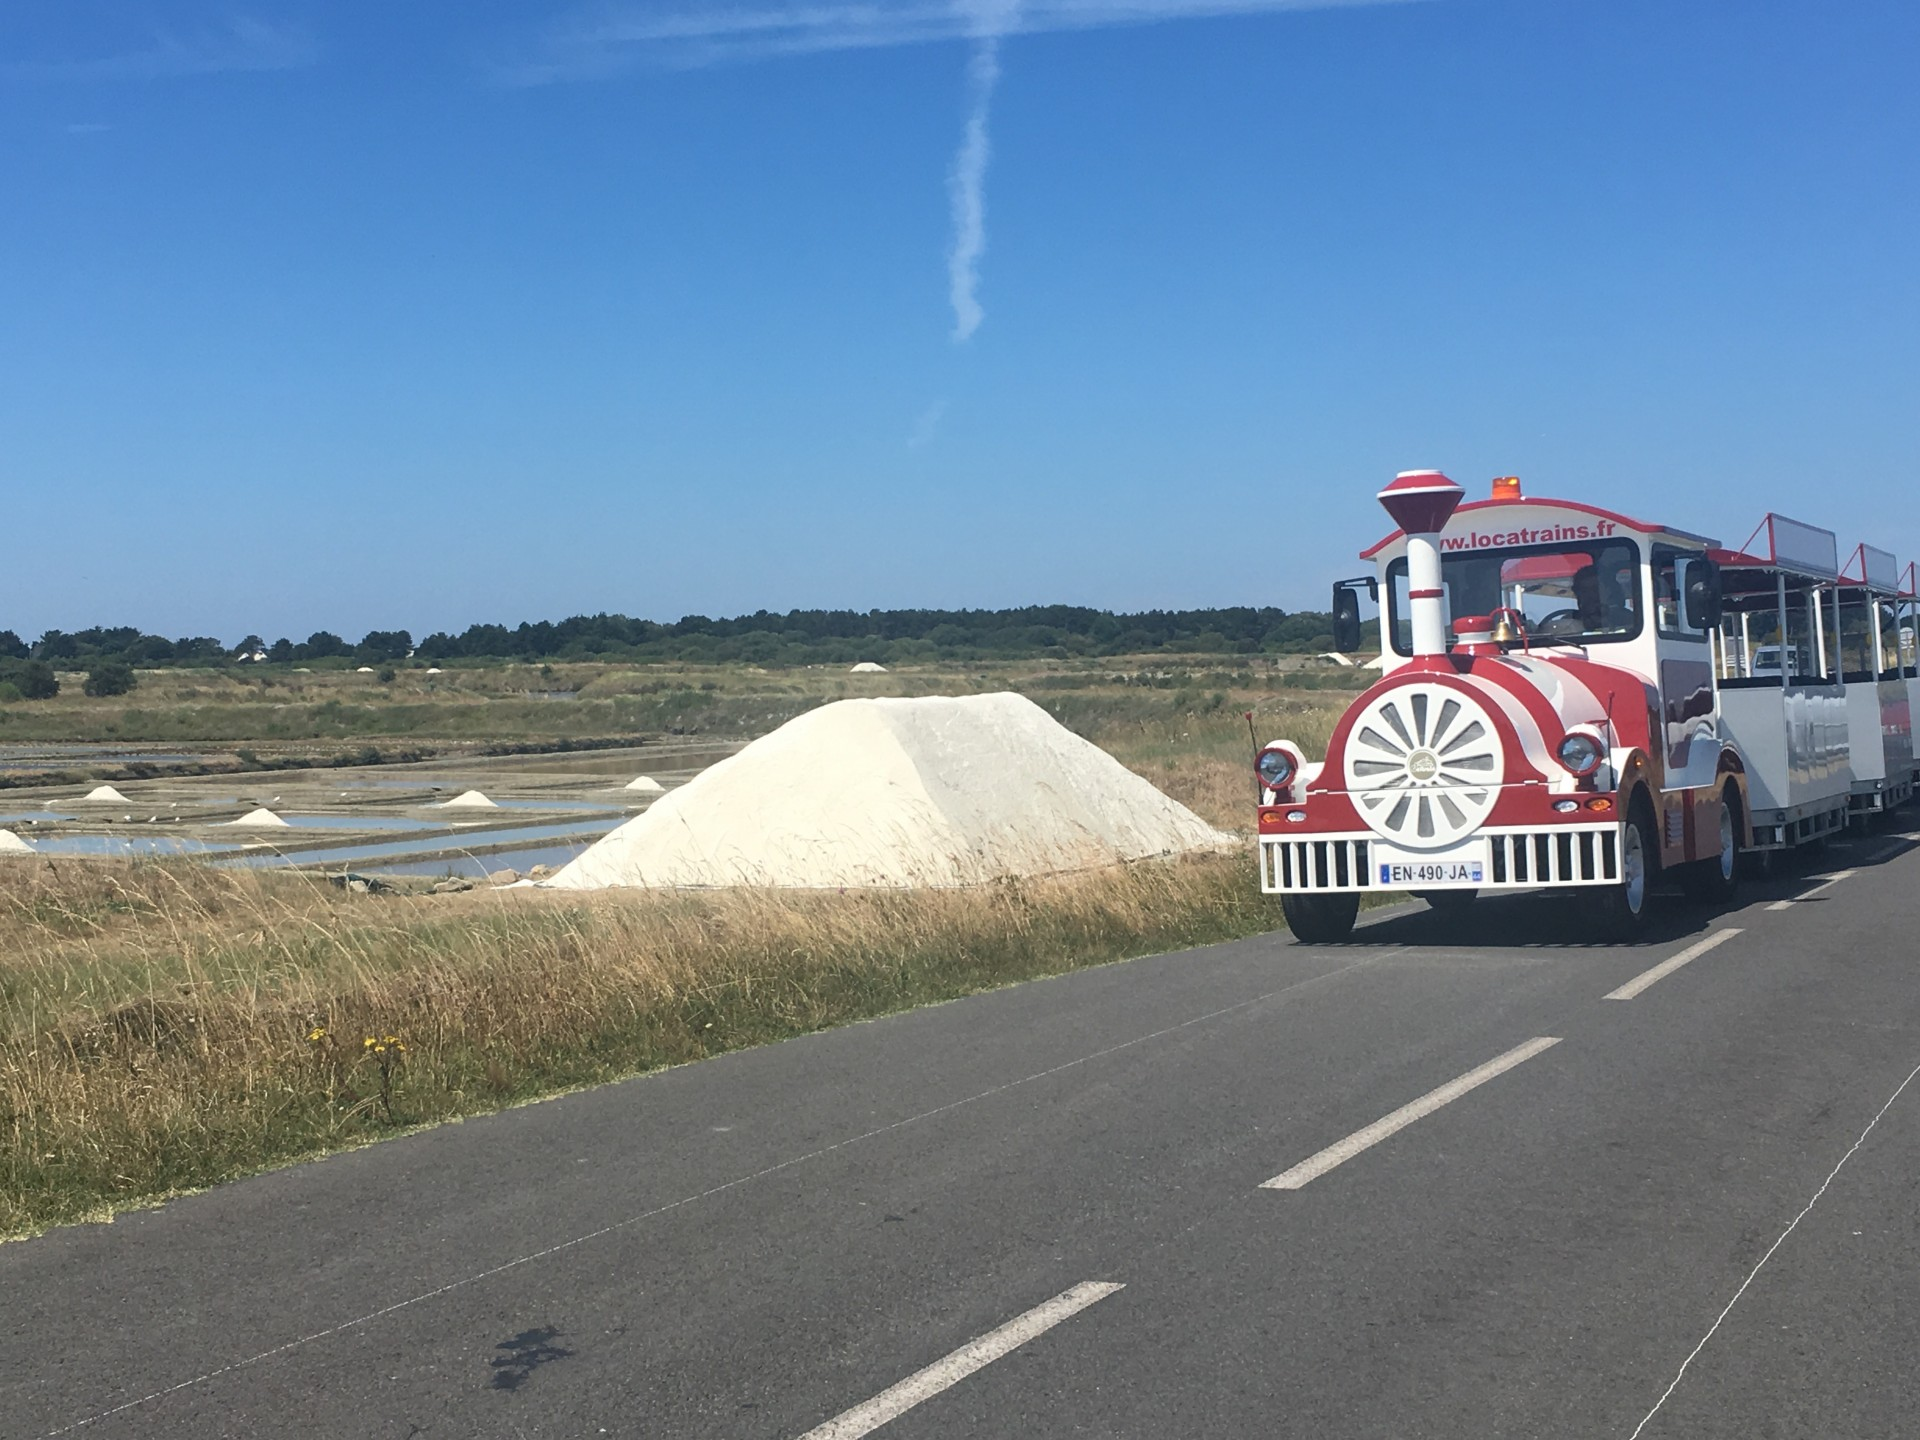 Le Petit Train des Marais Salants  La Turballe